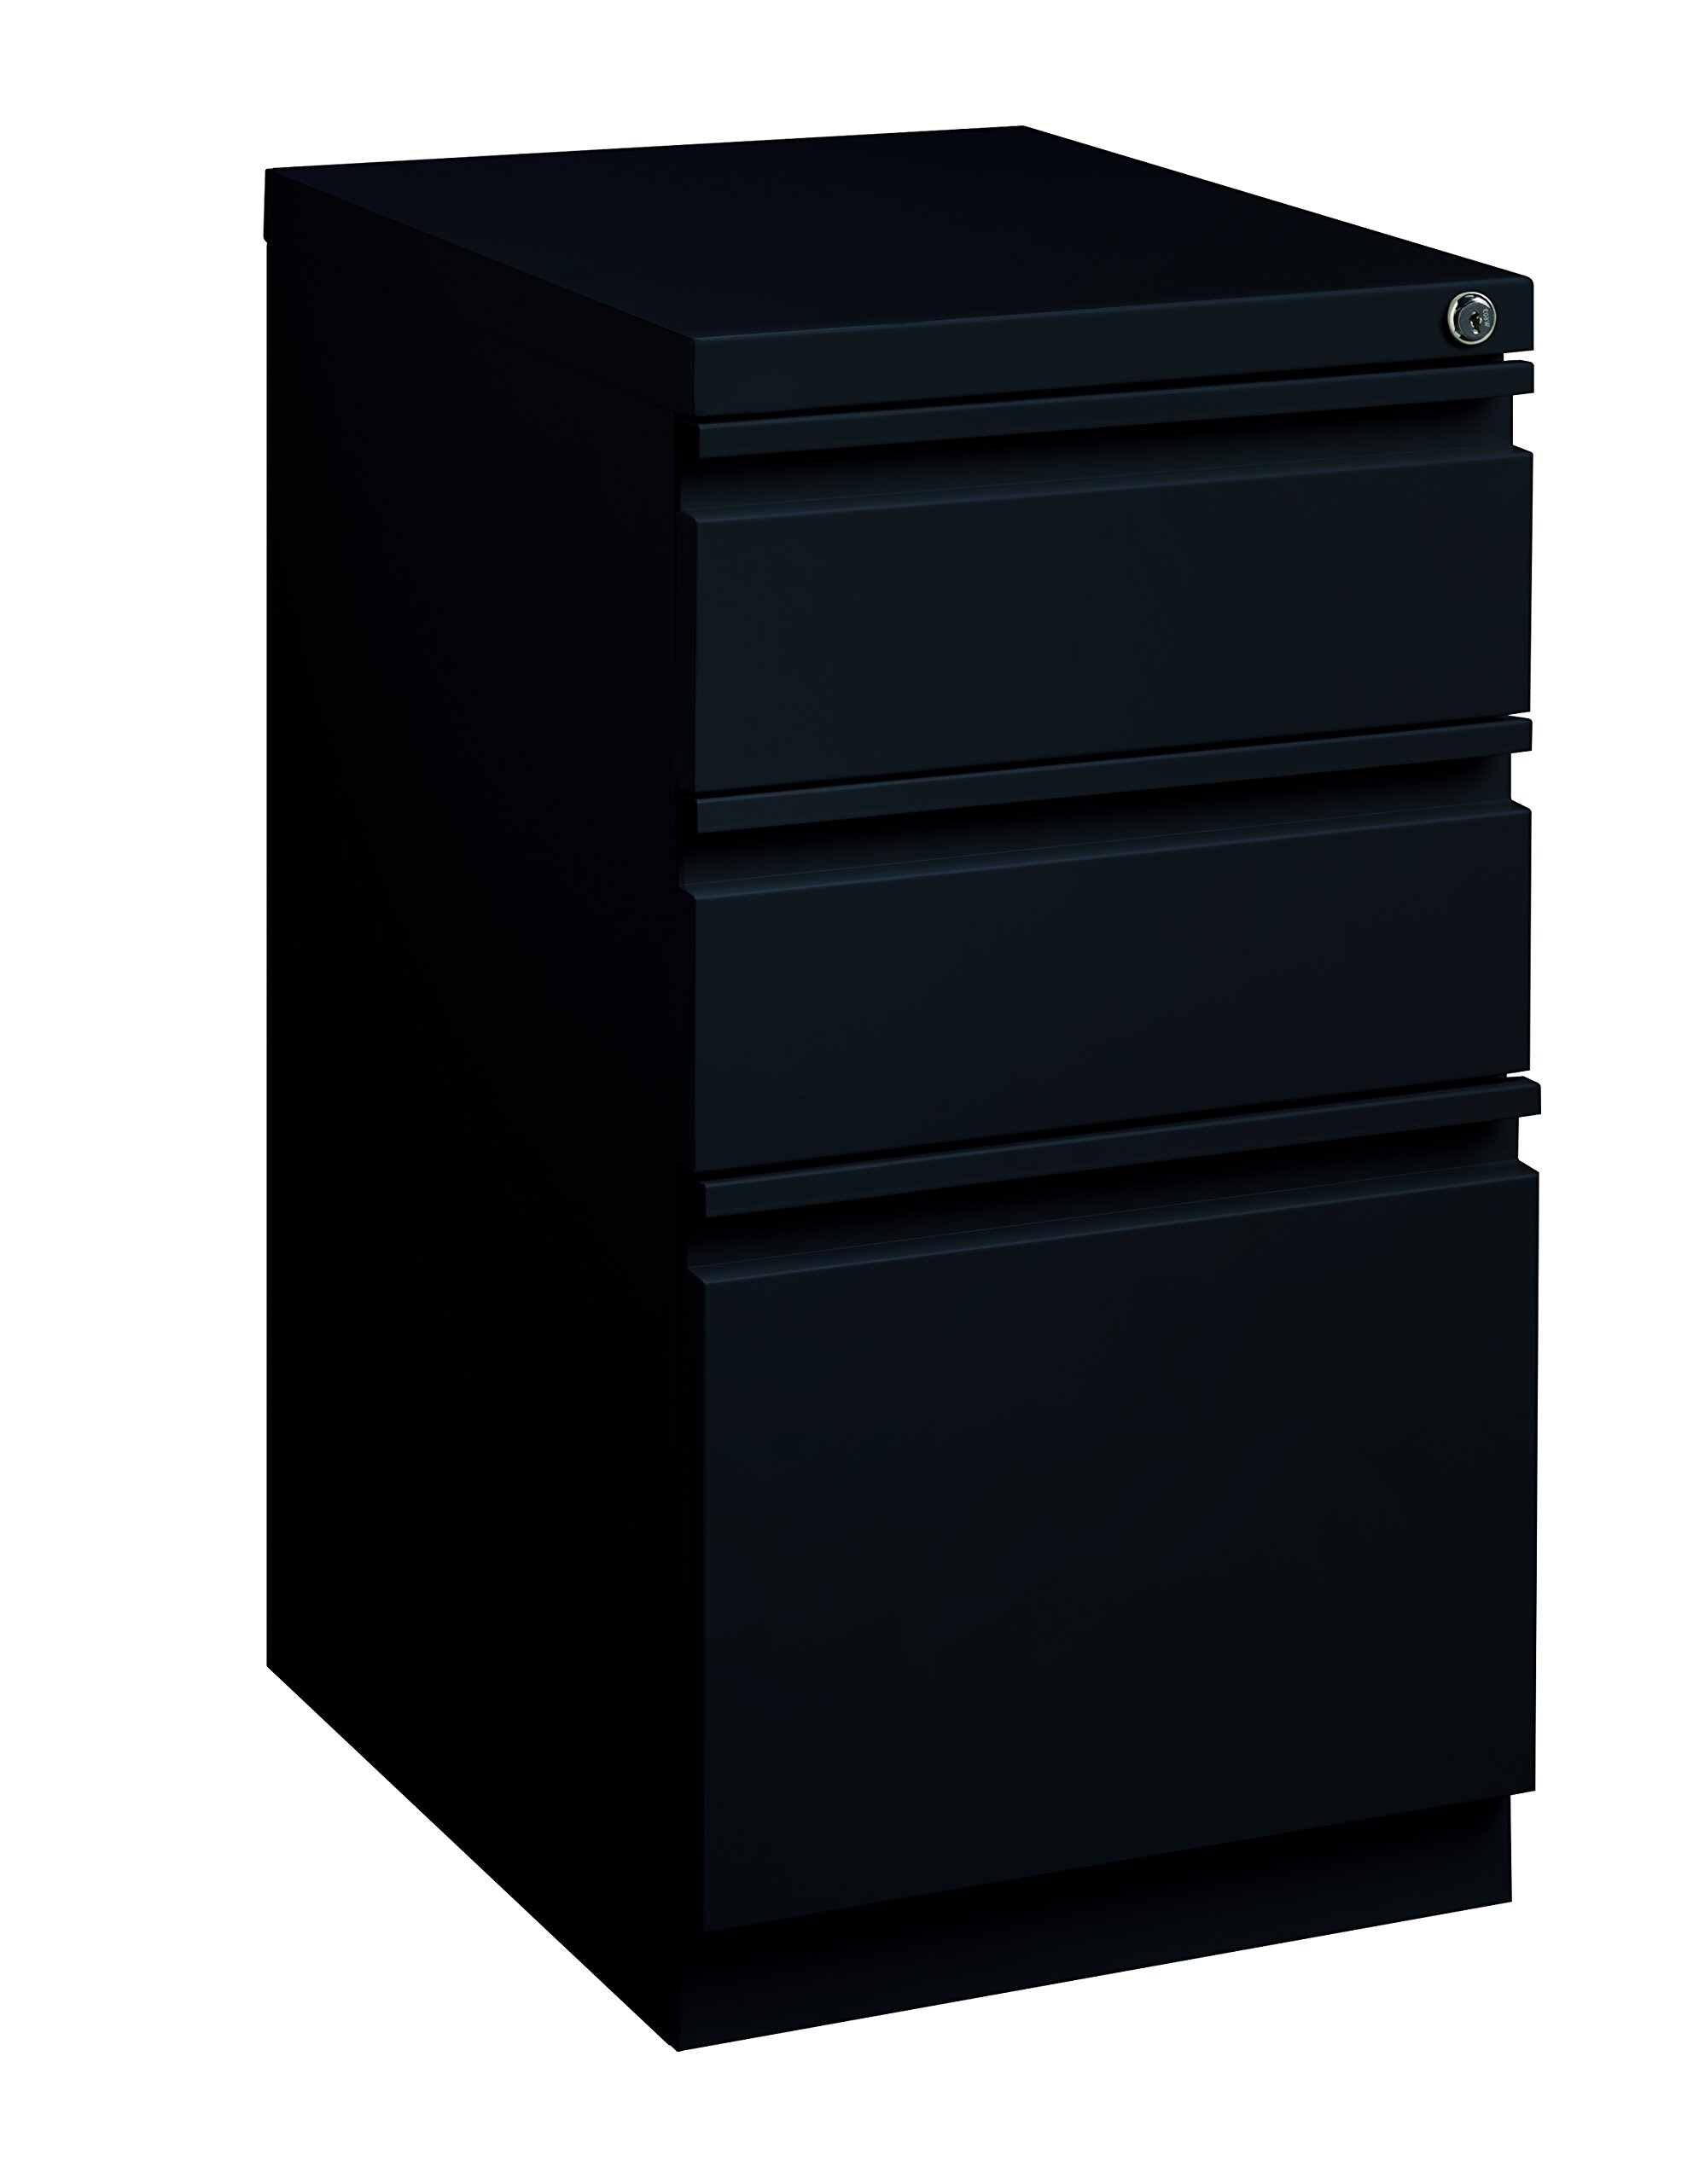 Pro Series Three Drawer Mobile Pedestal File Cabinet, Black, 20 inches deep (22283)